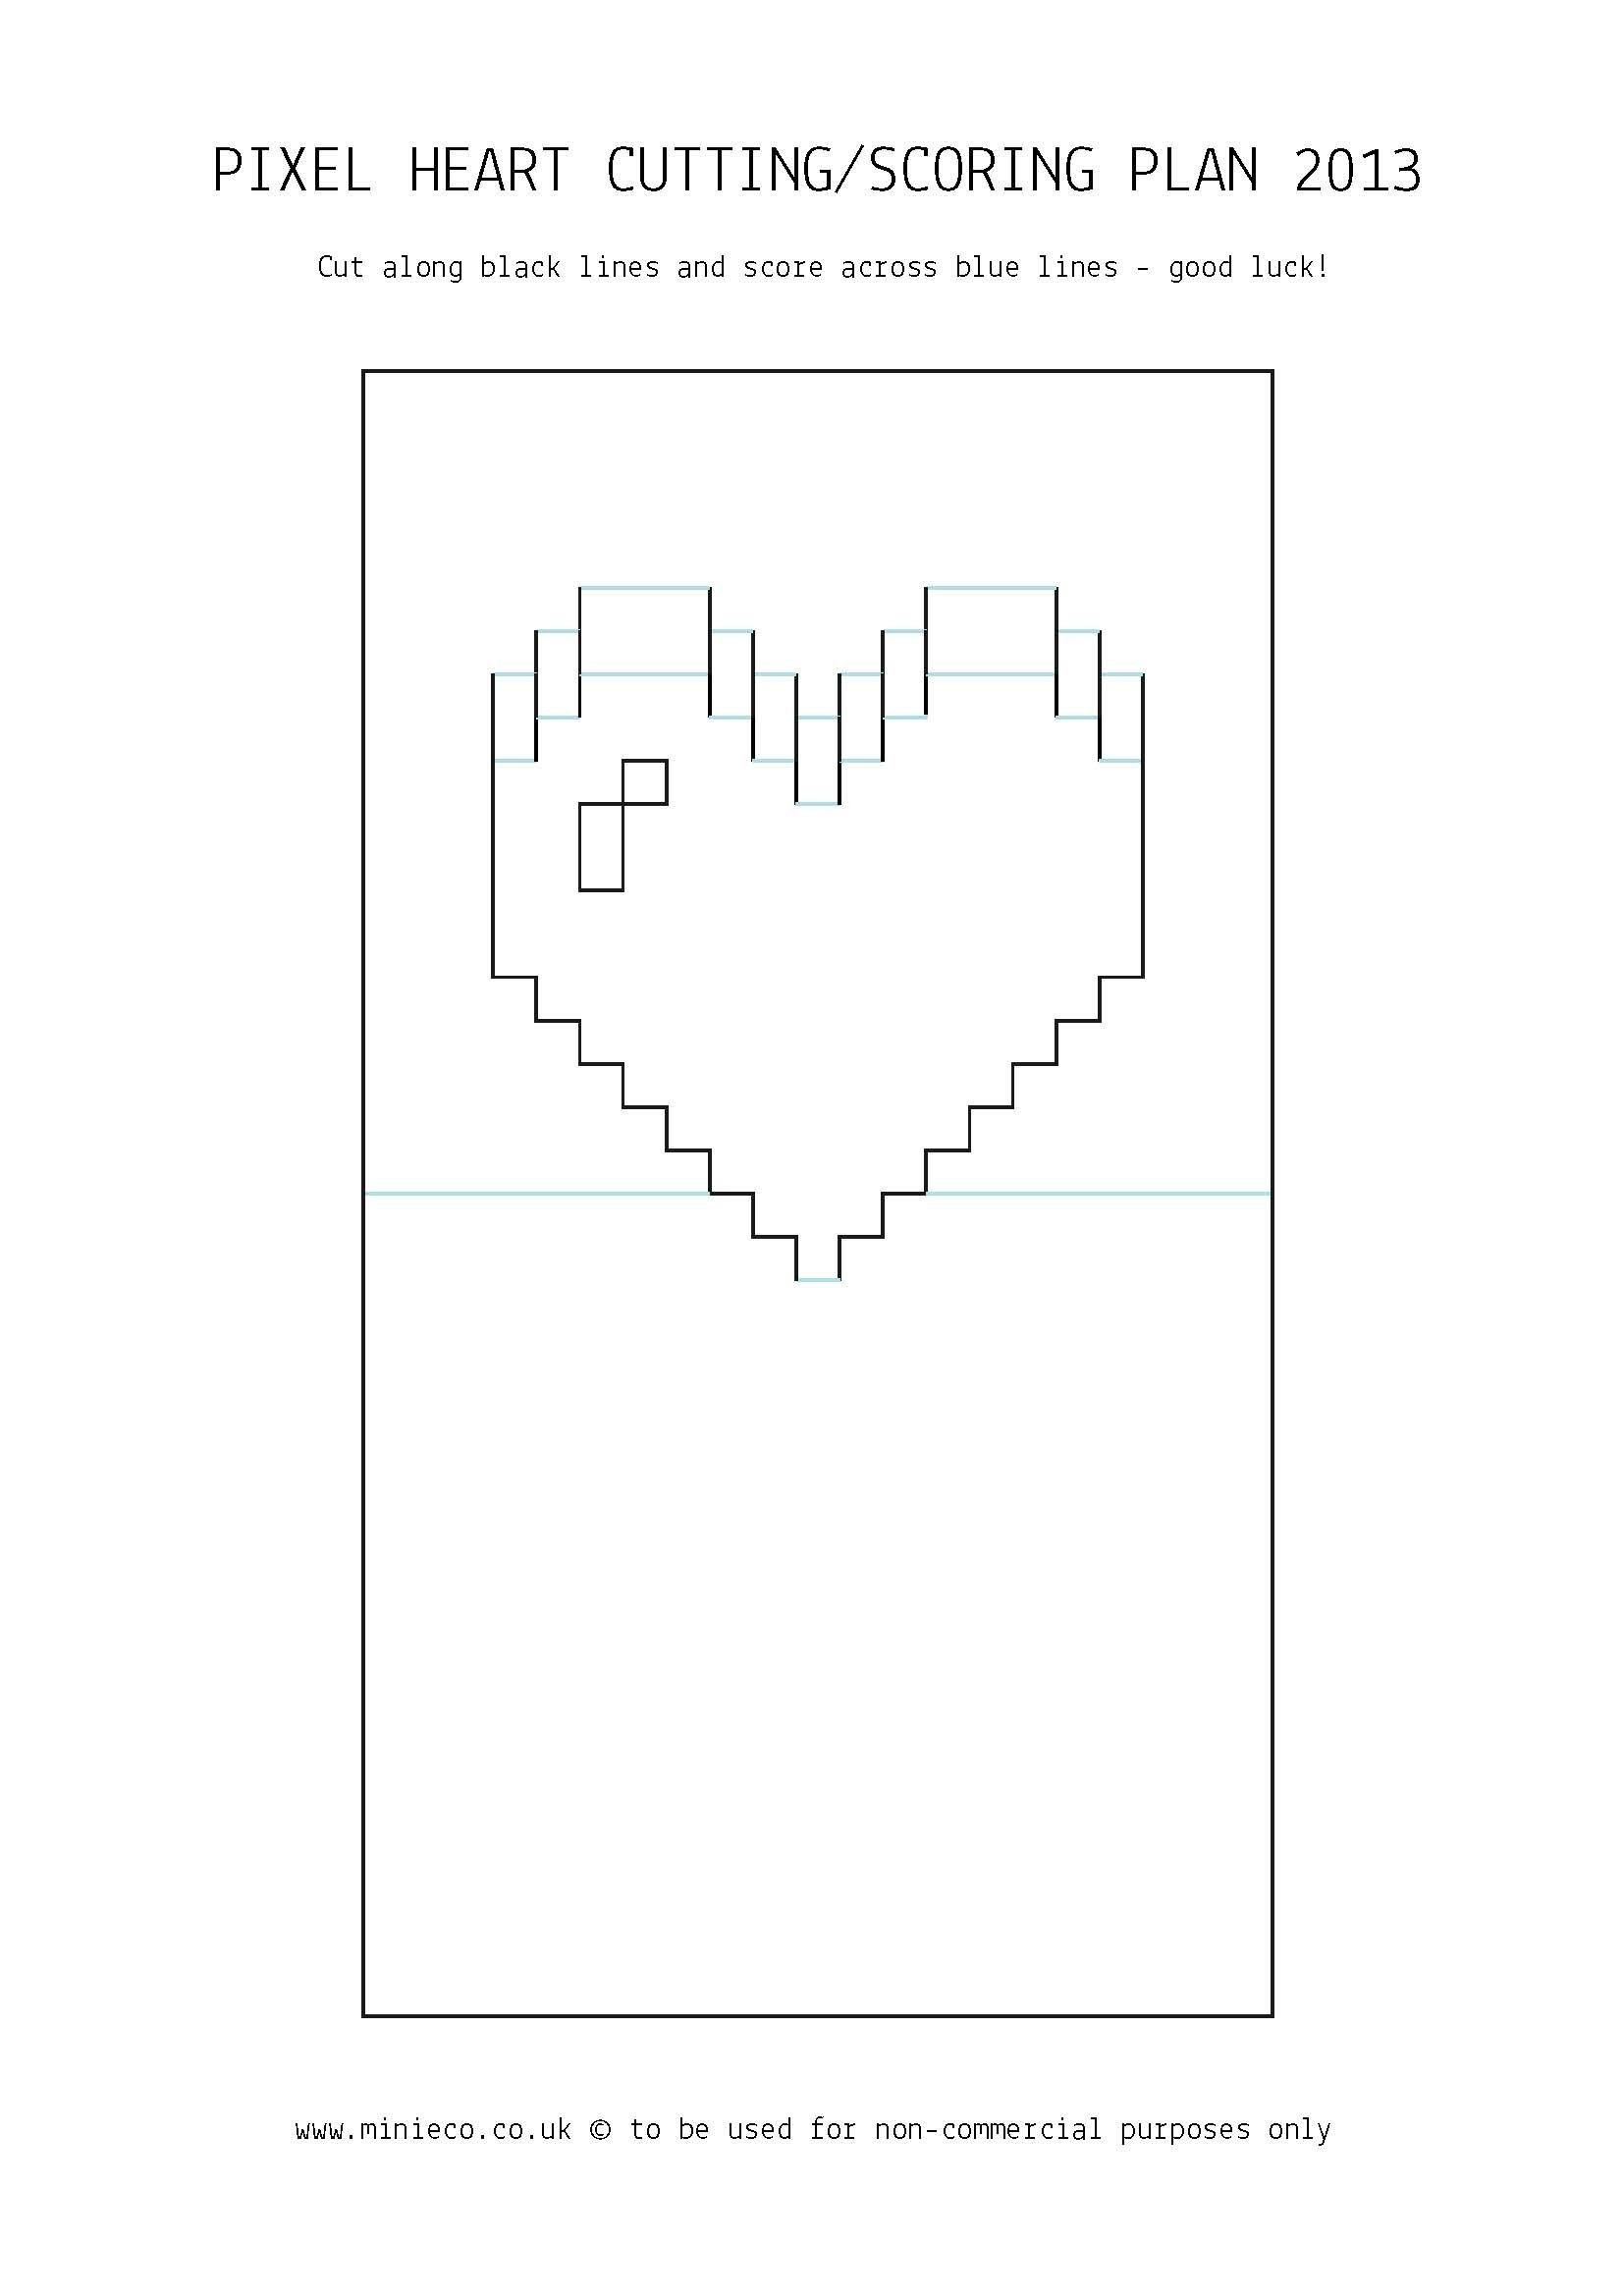 Twisting Hearts Pop Up Card Template New Pixel Heart Pop Up Card Intended For Pixel Heart Pop Up Card Template